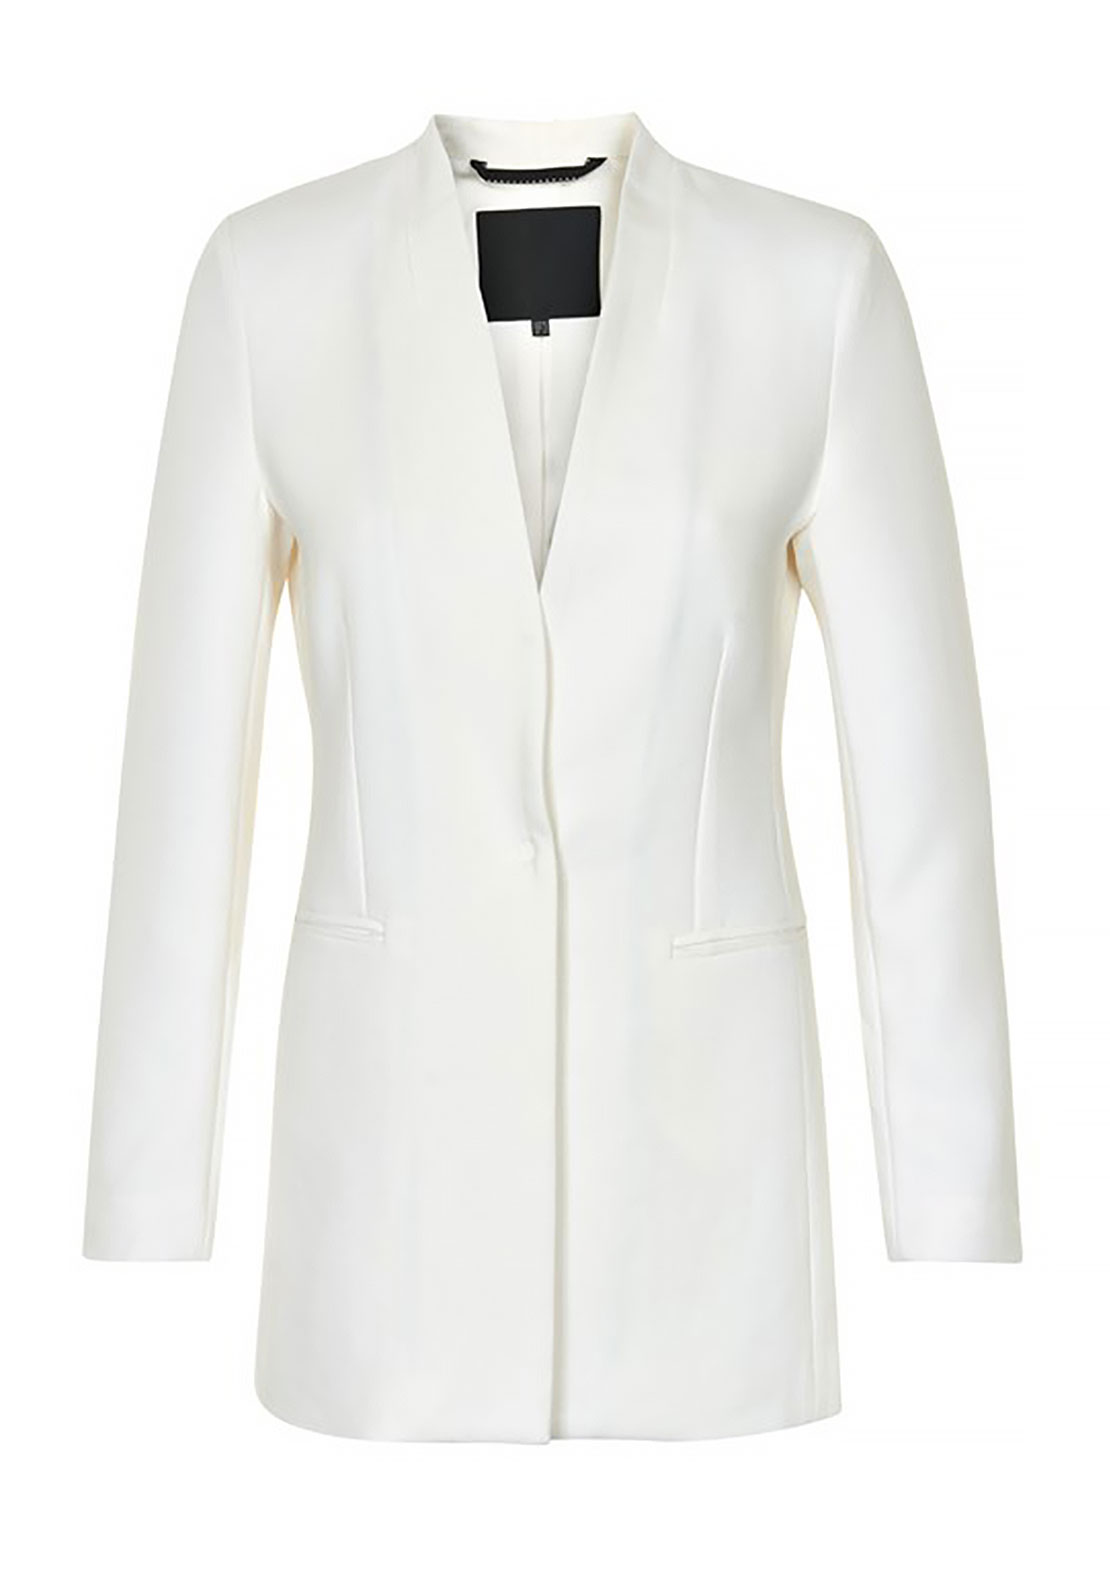 Inwear Coco Tailored Blazer, Cream